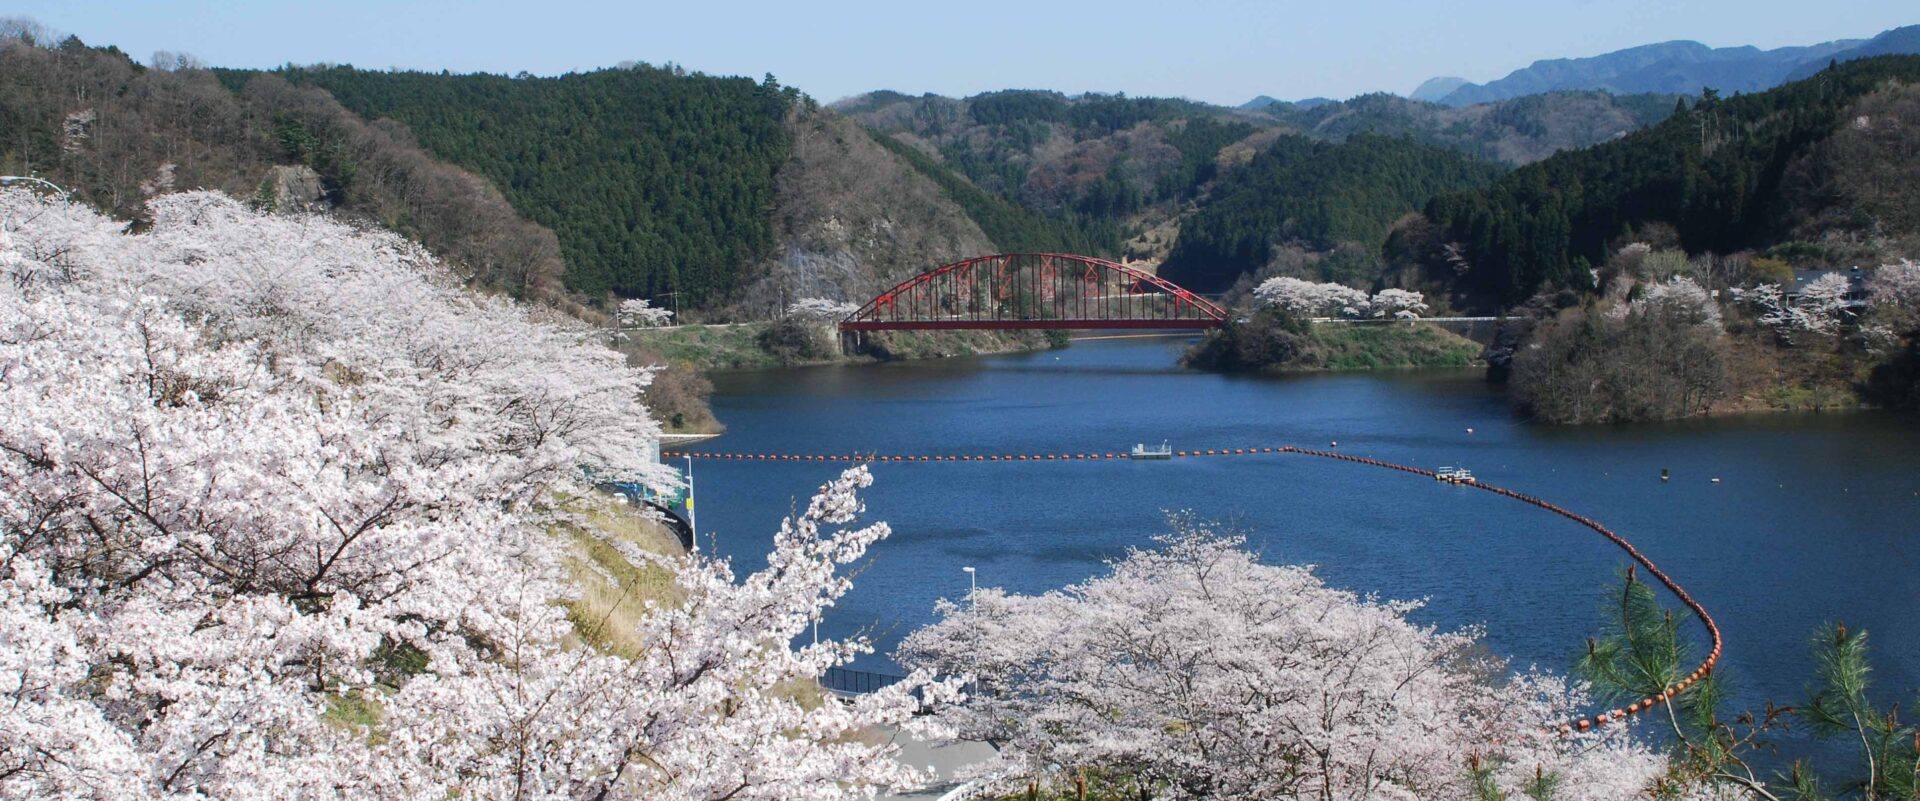 A brilliant blue lake with white cherry blossoms